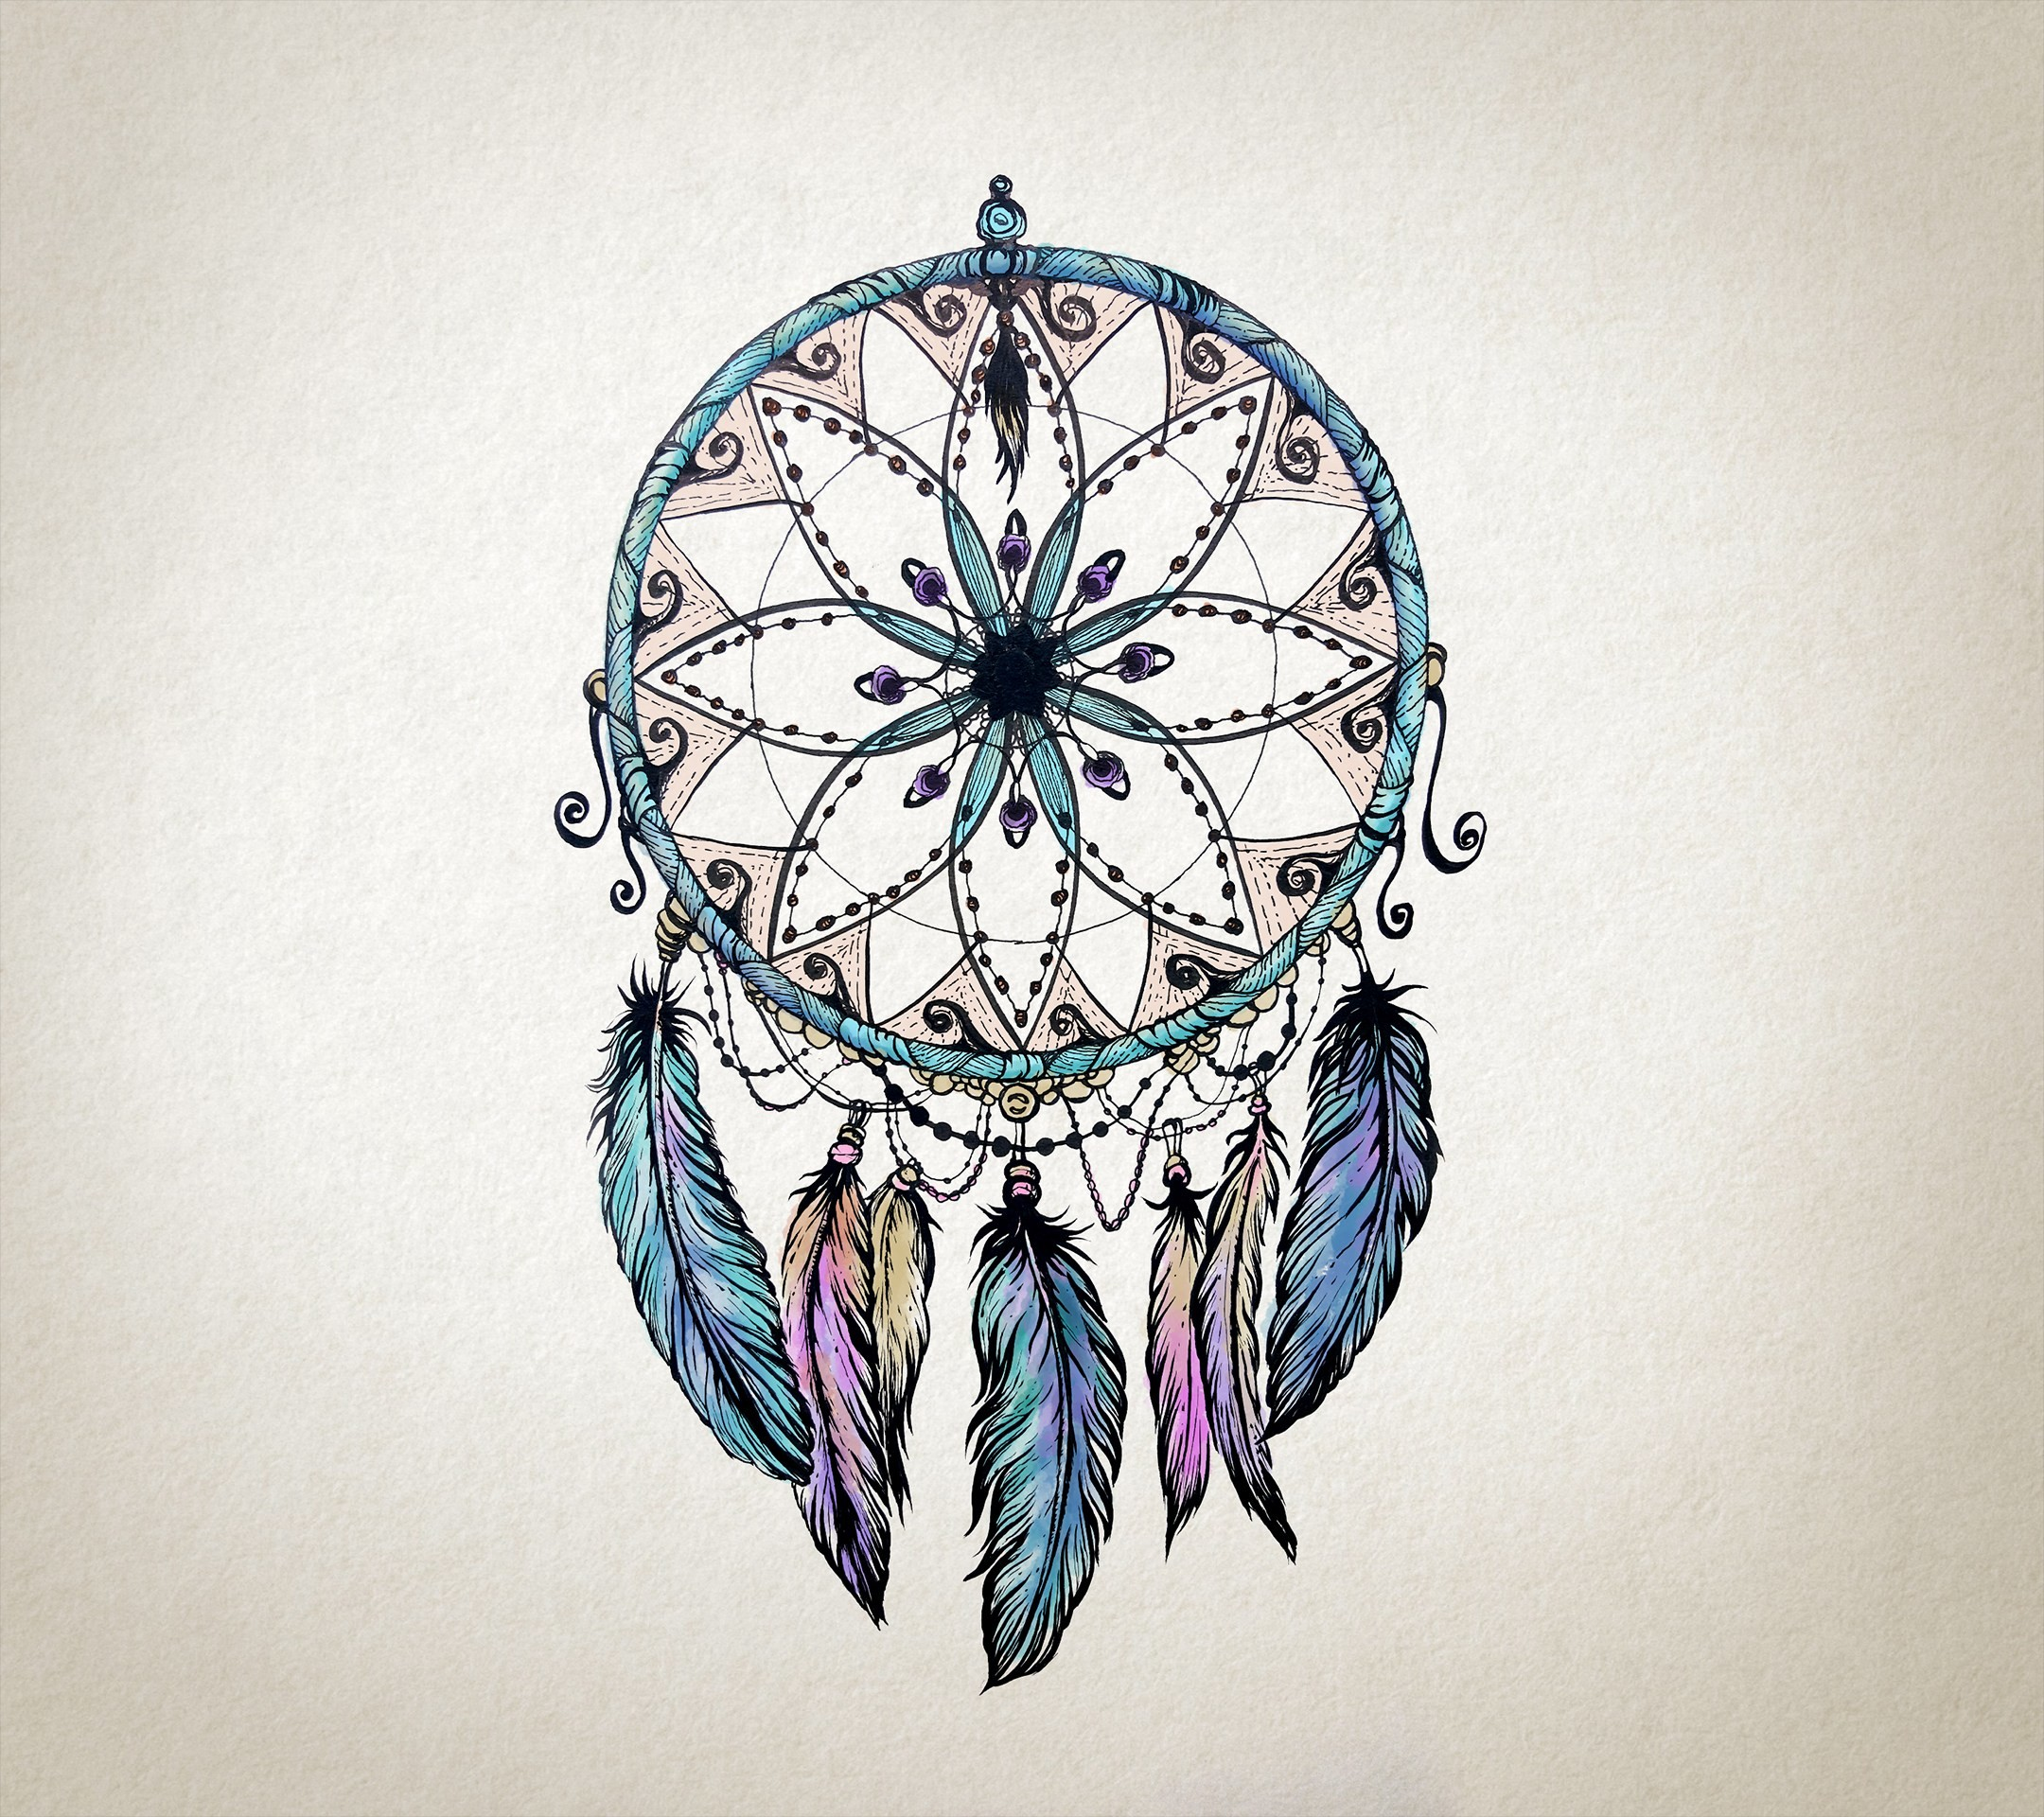 Pictures Of Dream Catchers: Colorful Dream Catcher Wallpaper (57+ Images